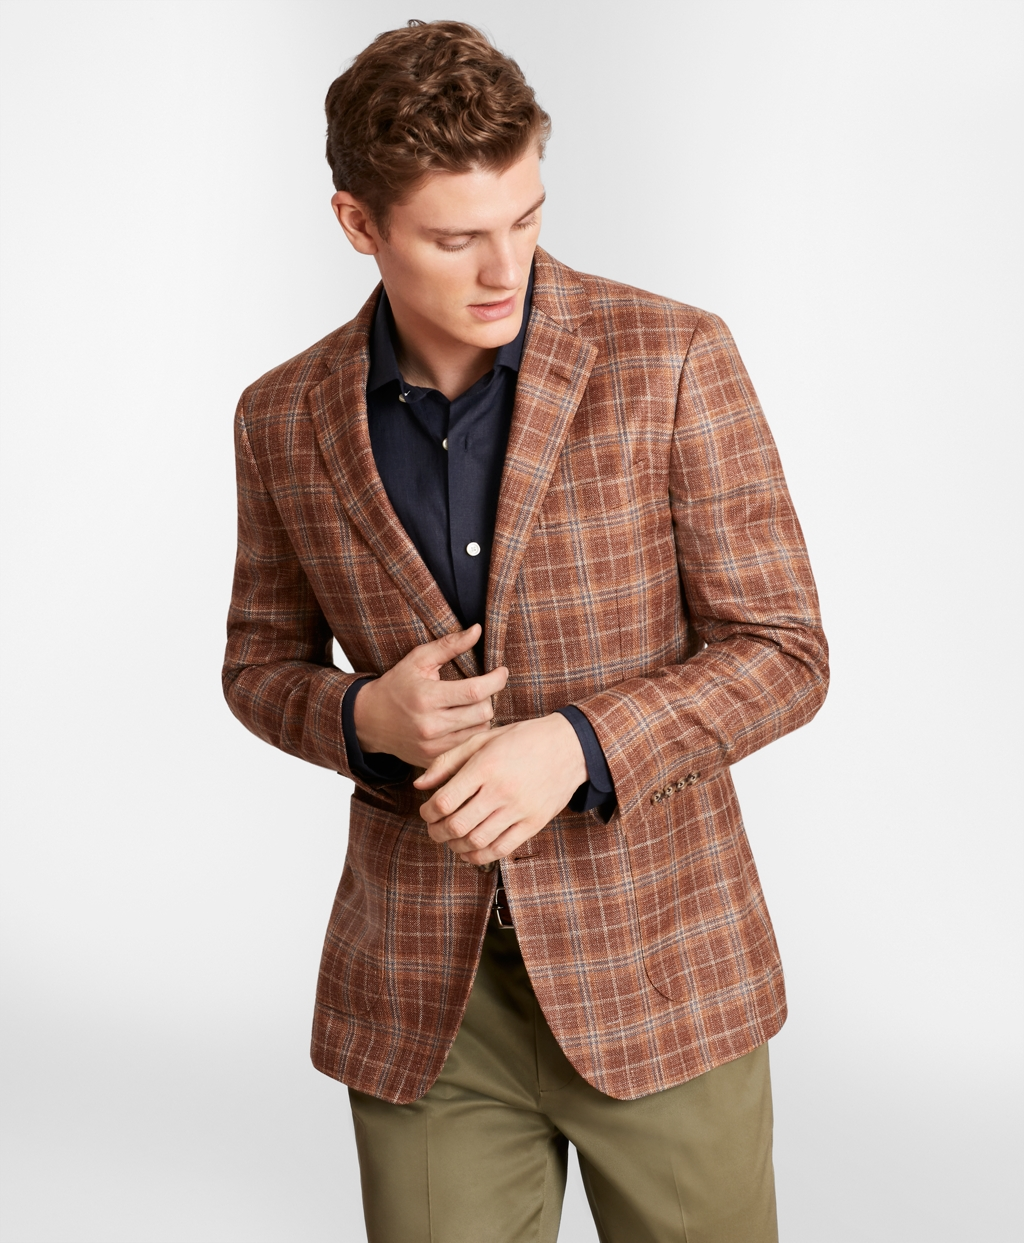 Men's Vintage Style Suits, Classic Suits Brooks Brothers Mens Milano Fit Check Sport Coat $179.40 AT vintagedancer.com